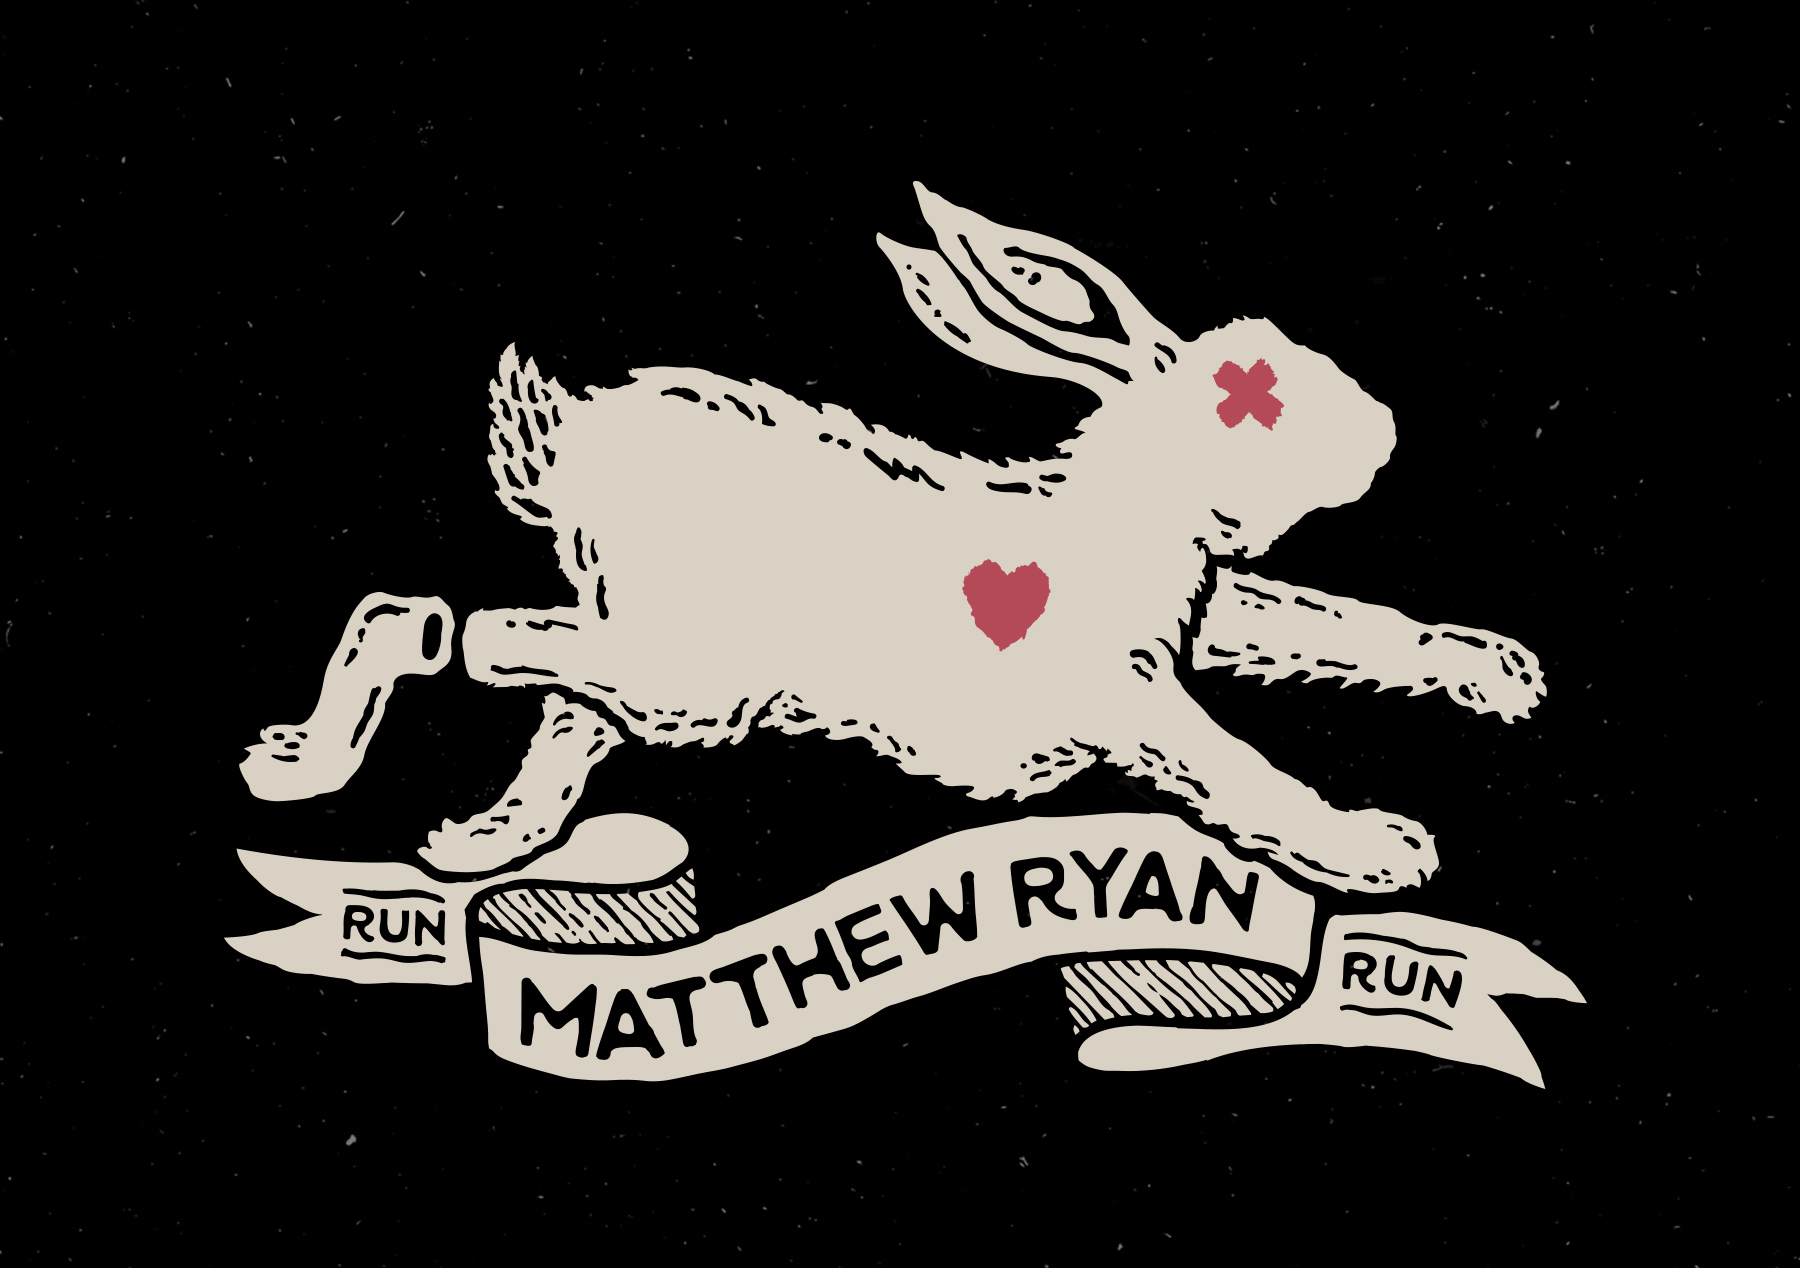 Matthew Ryan Run Rabbit Run Shirt Design